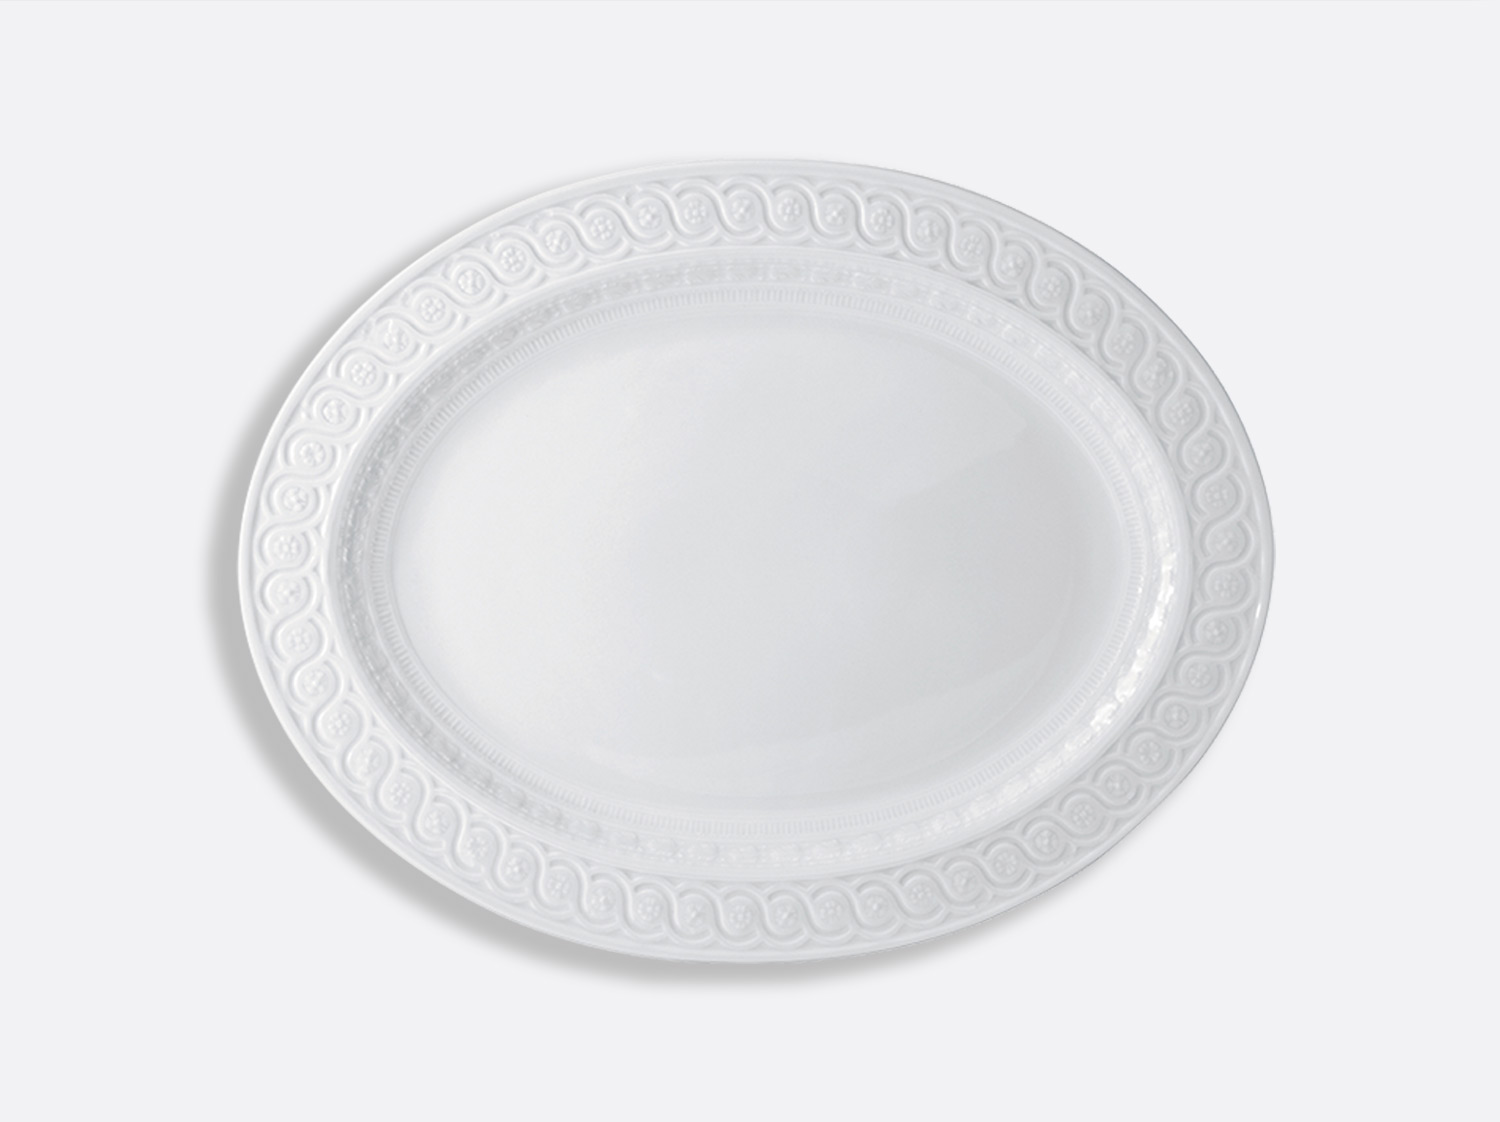 China Oval platter 48 cm of the collection Louvre | Bernardaud